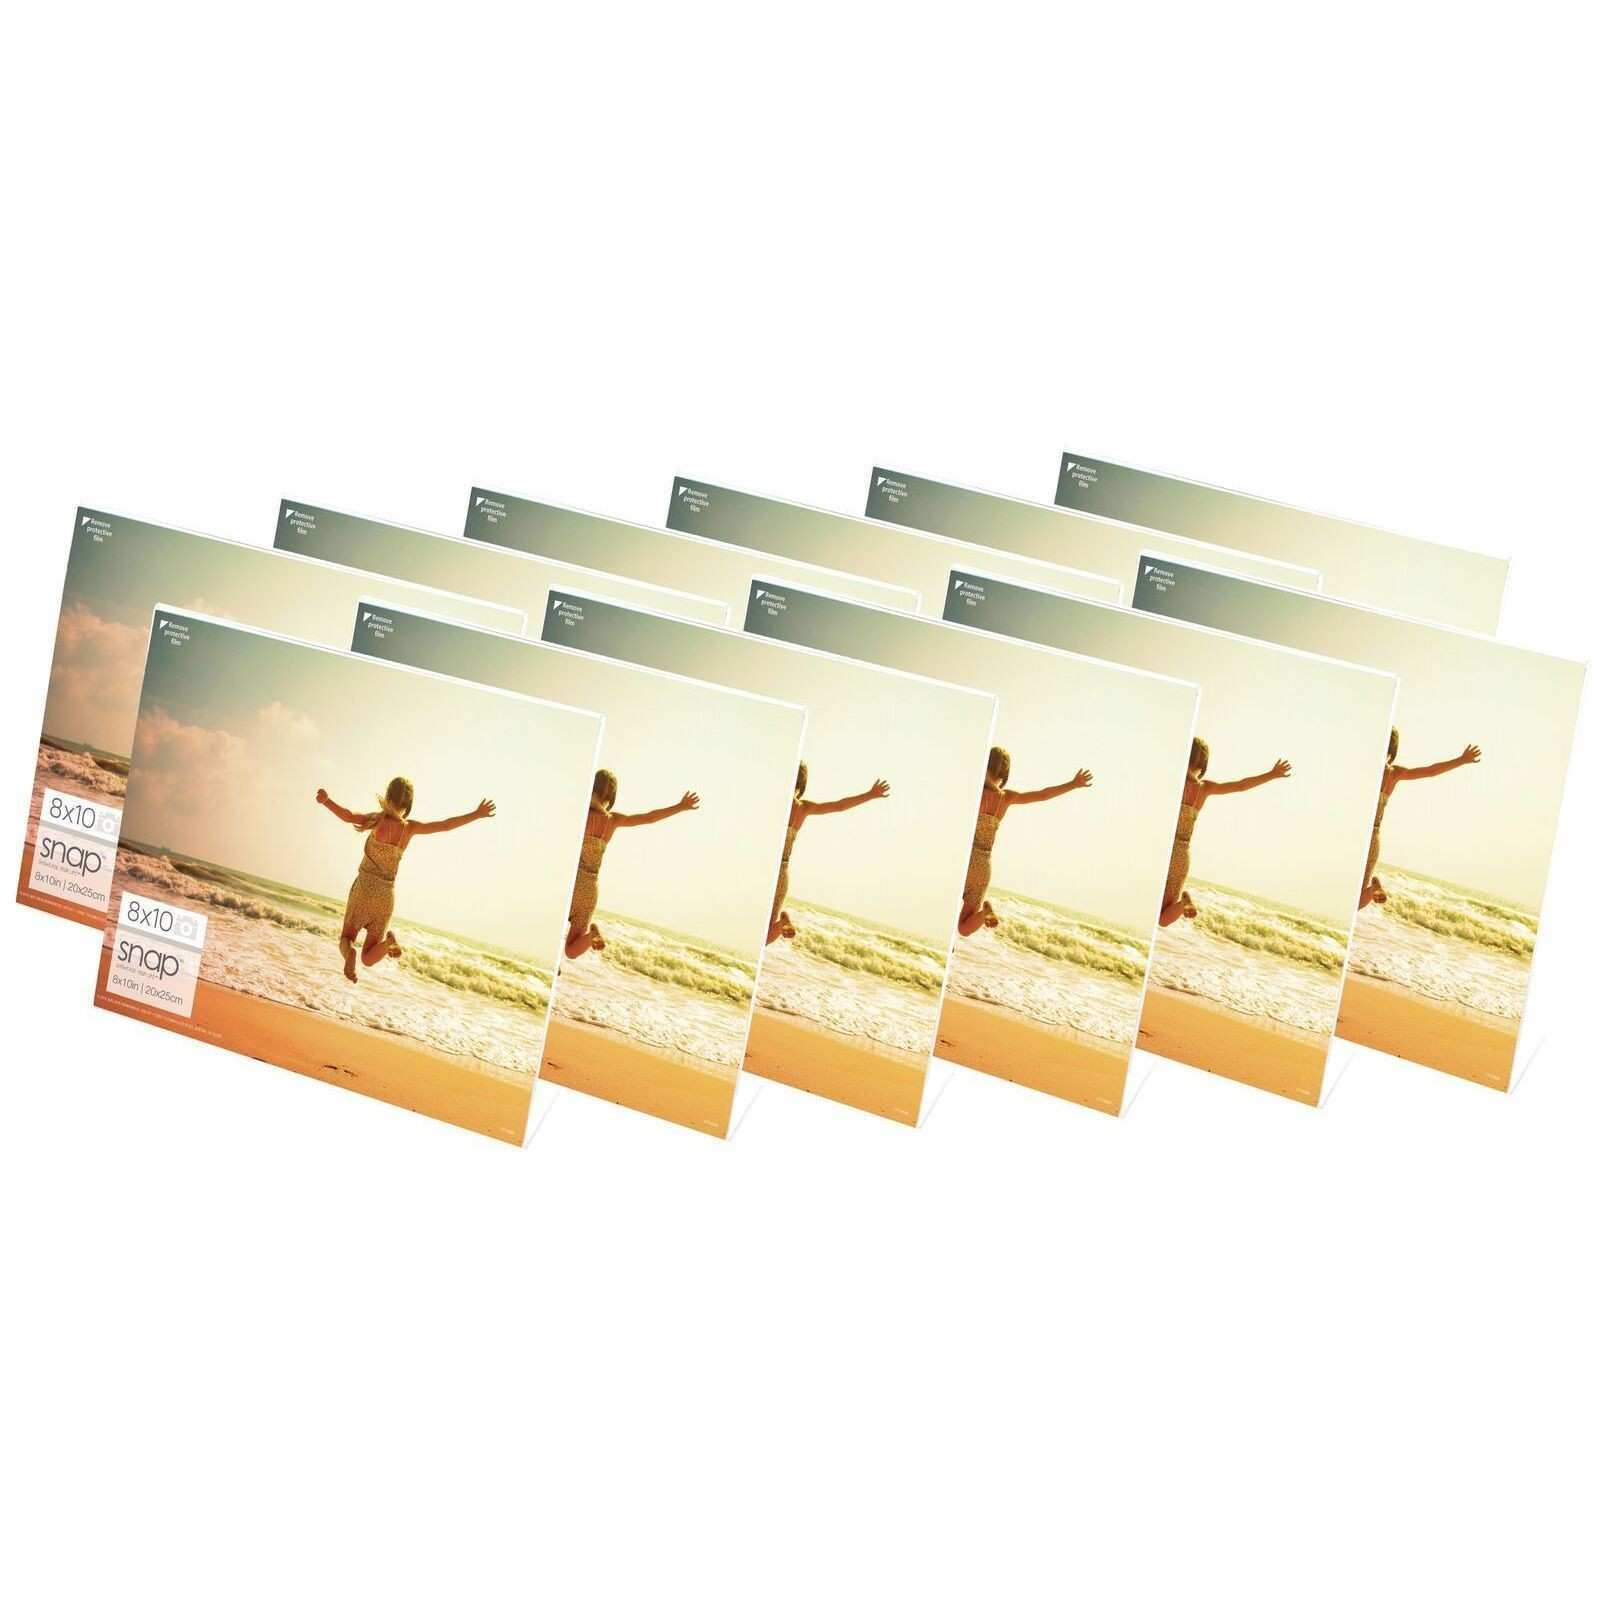 Snap Horizontal Acrylic Frames Pack of 12 8x10 Clear